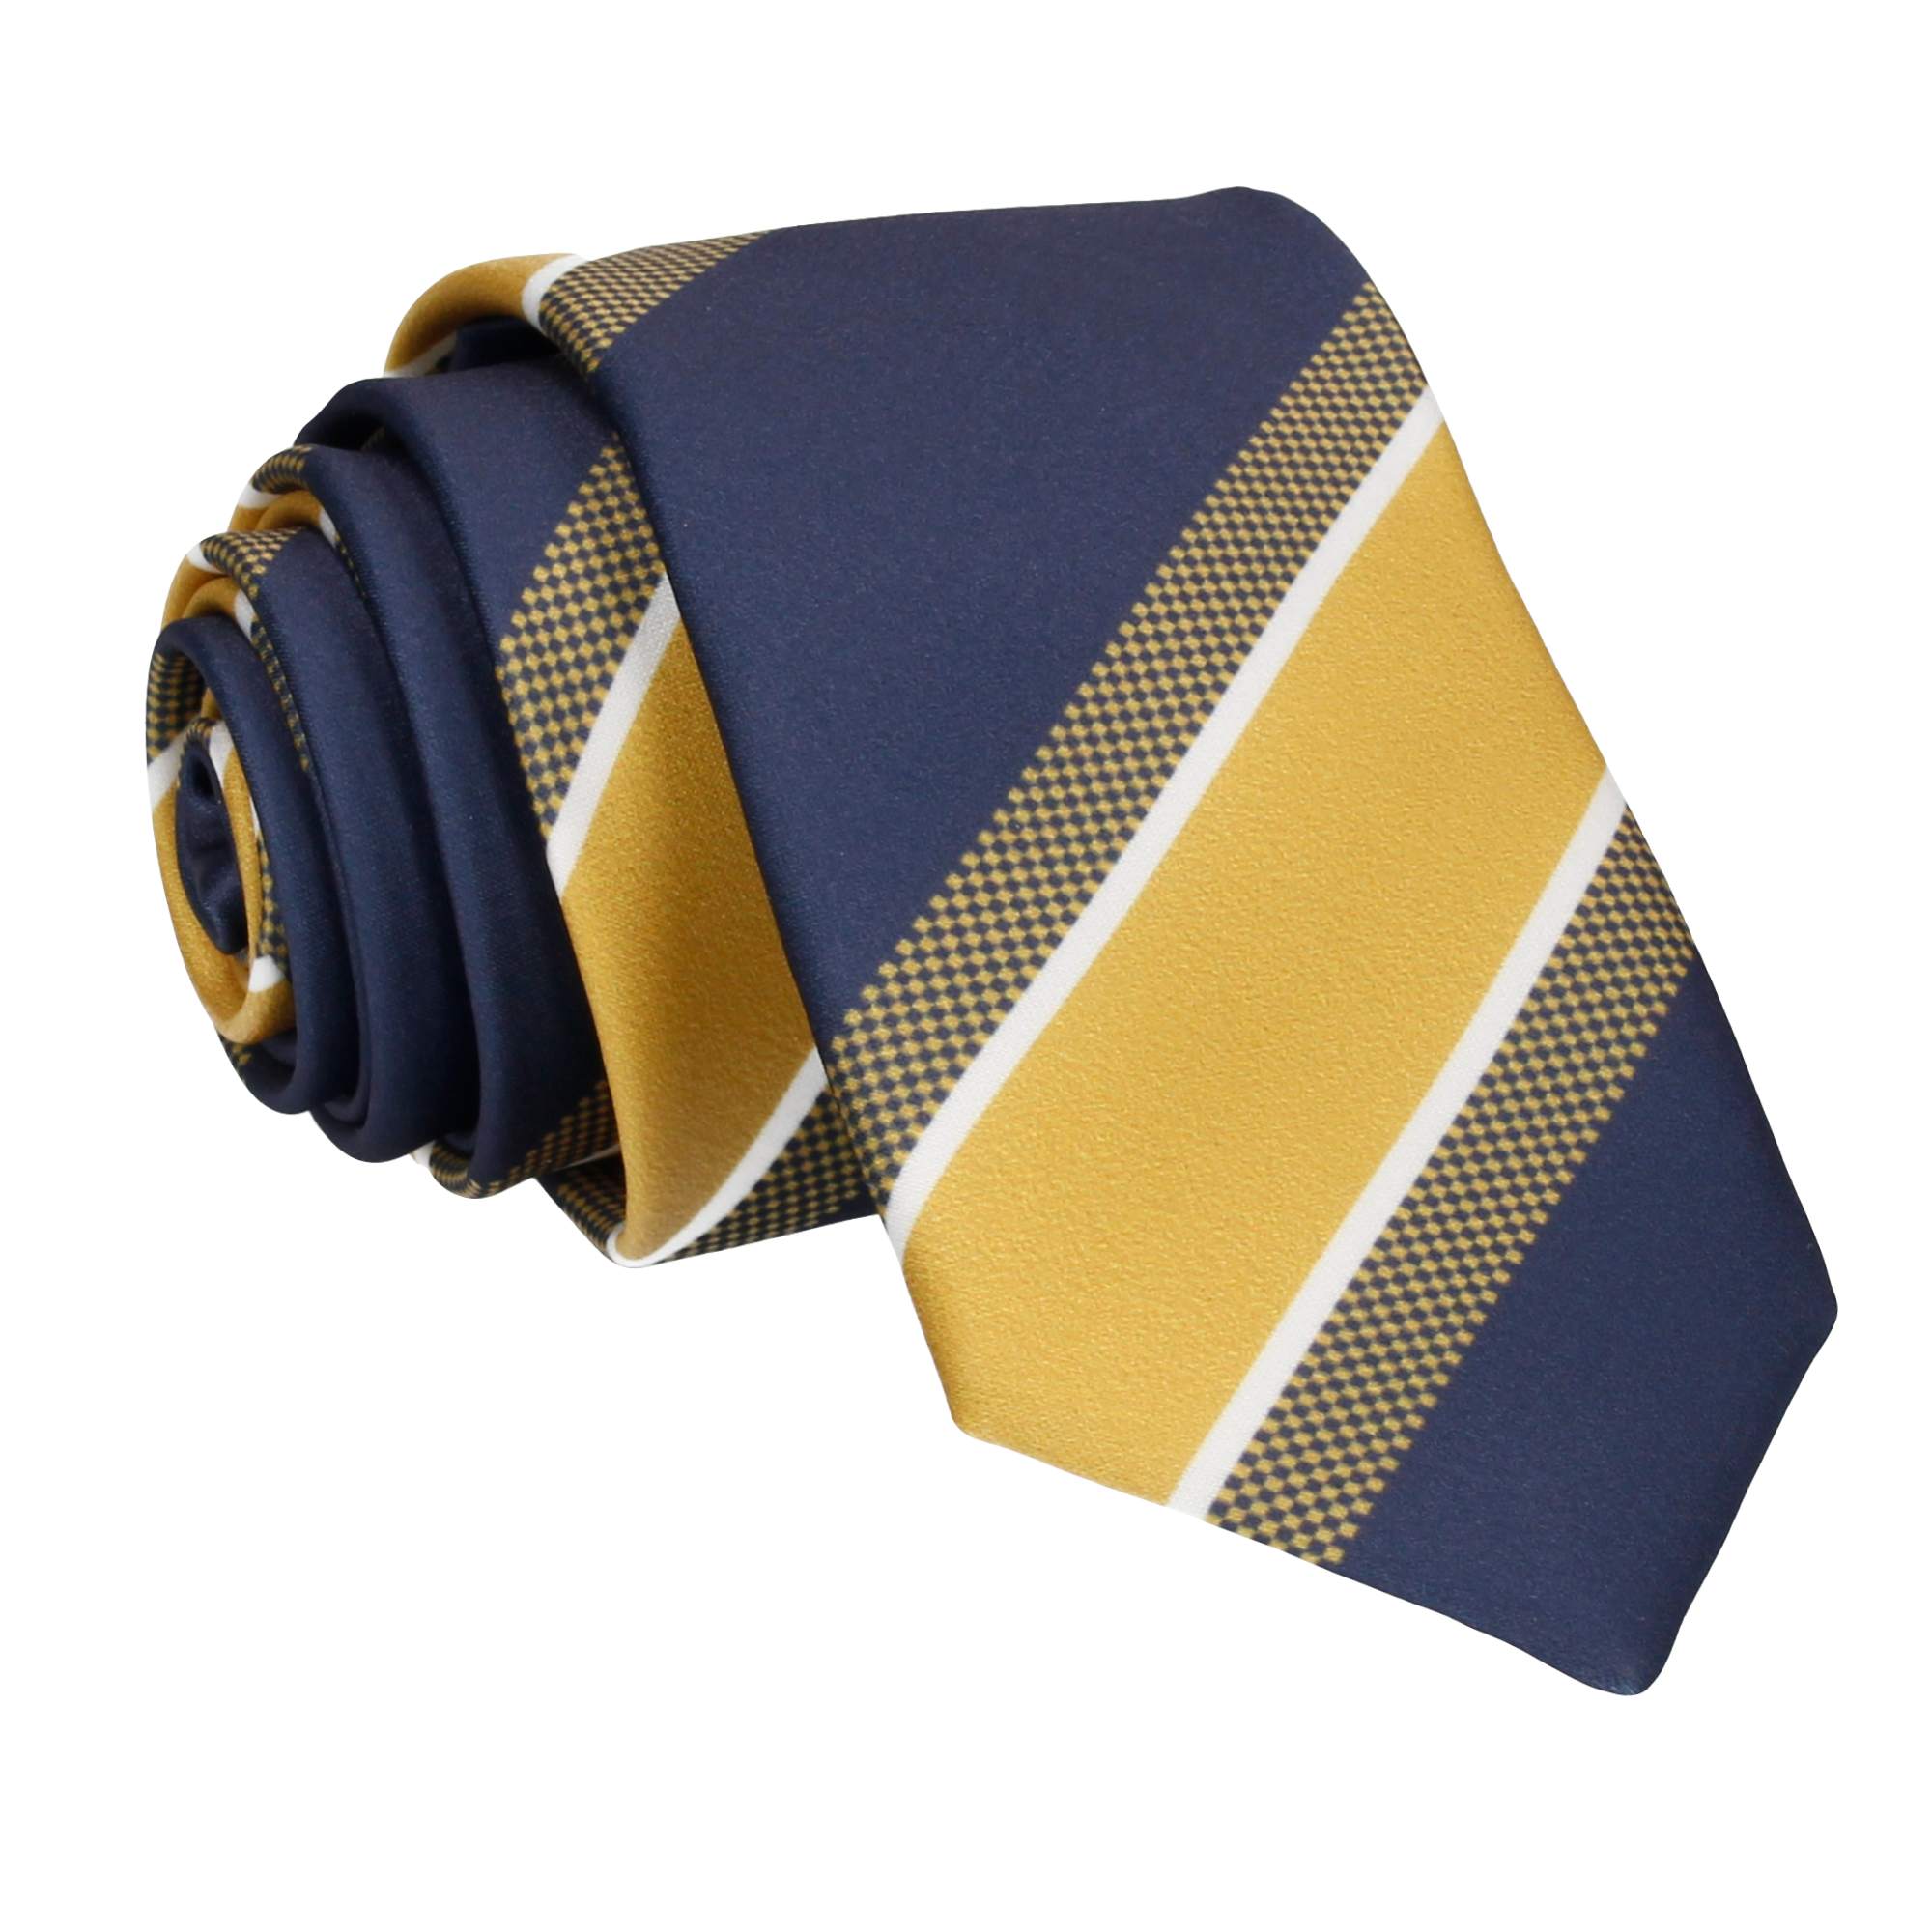 Delta in Gold & Navy Blue Tie